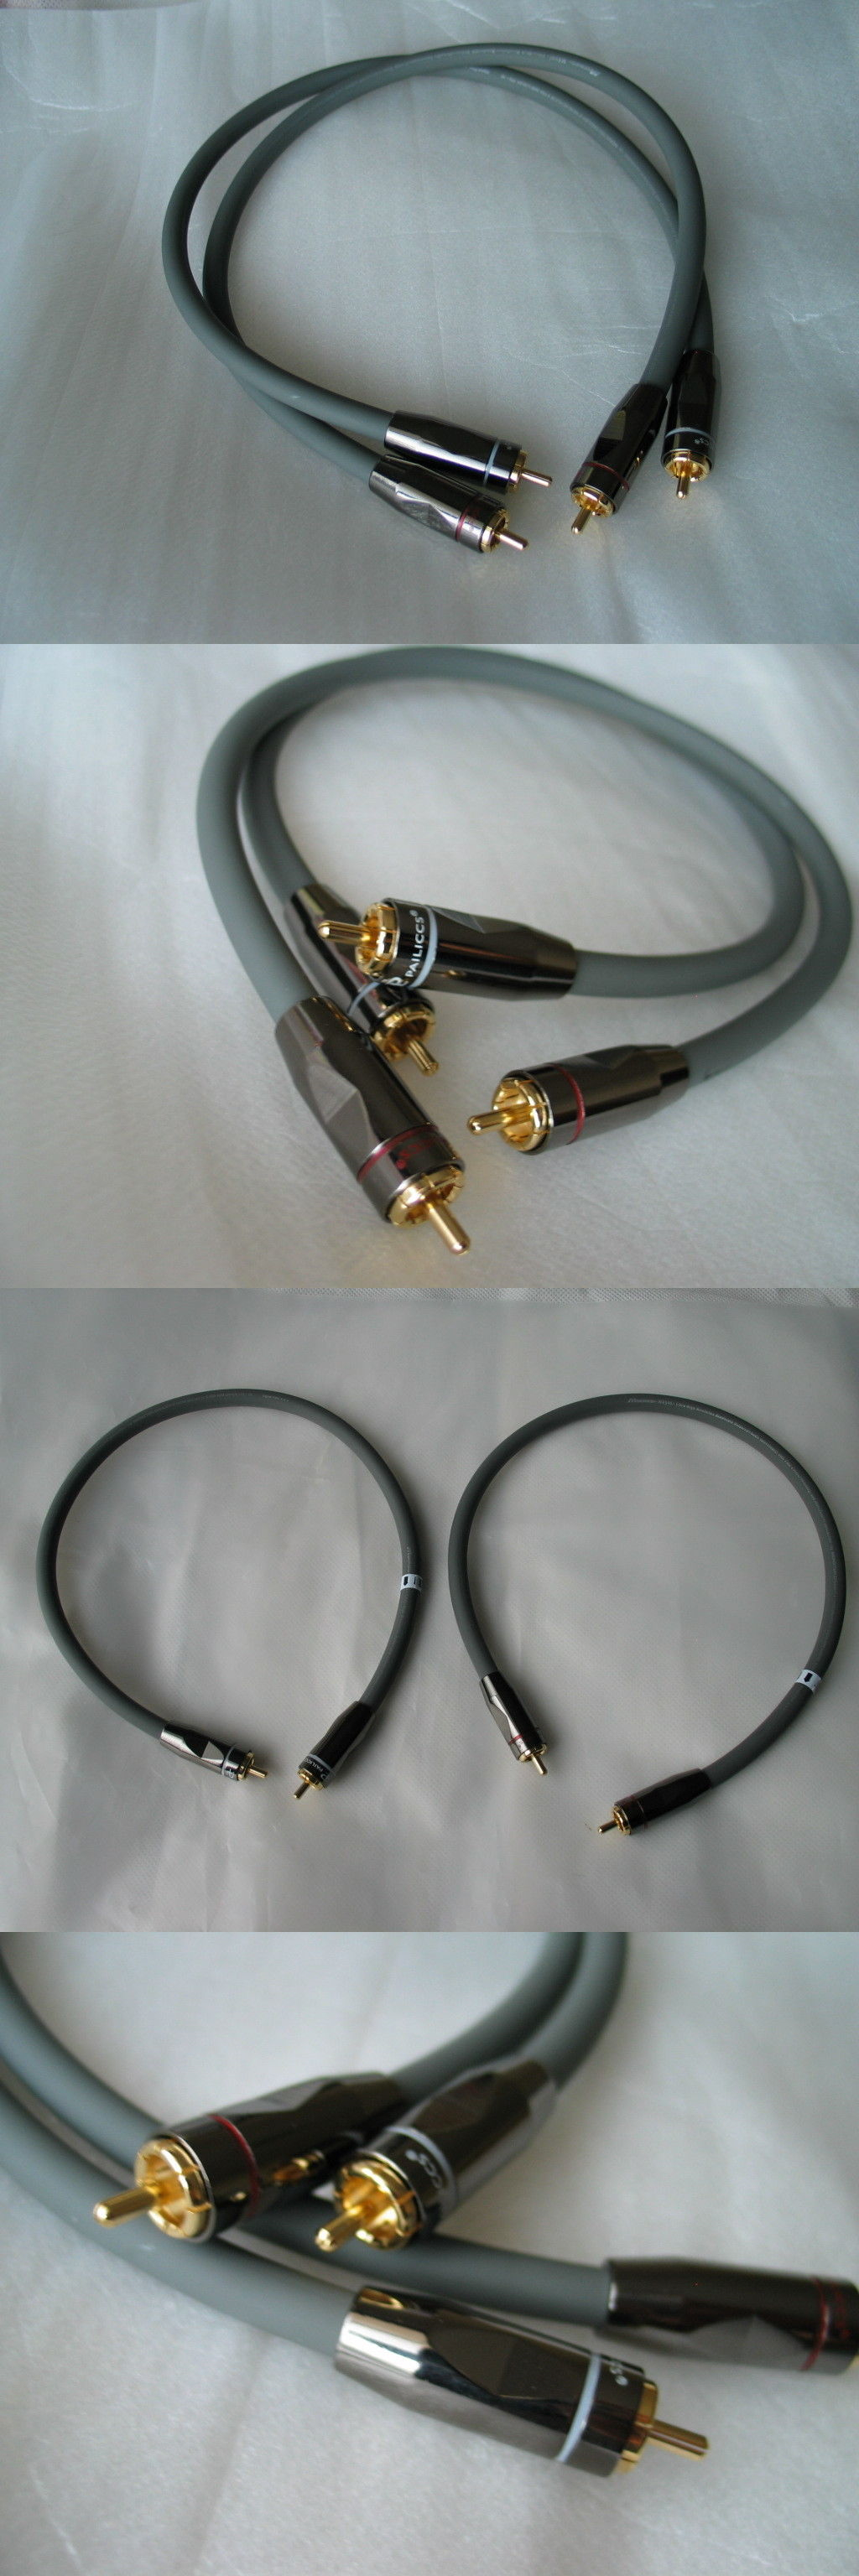 Audio Cables and Interconnects: .5M Monster Cable M-Series M850i ...